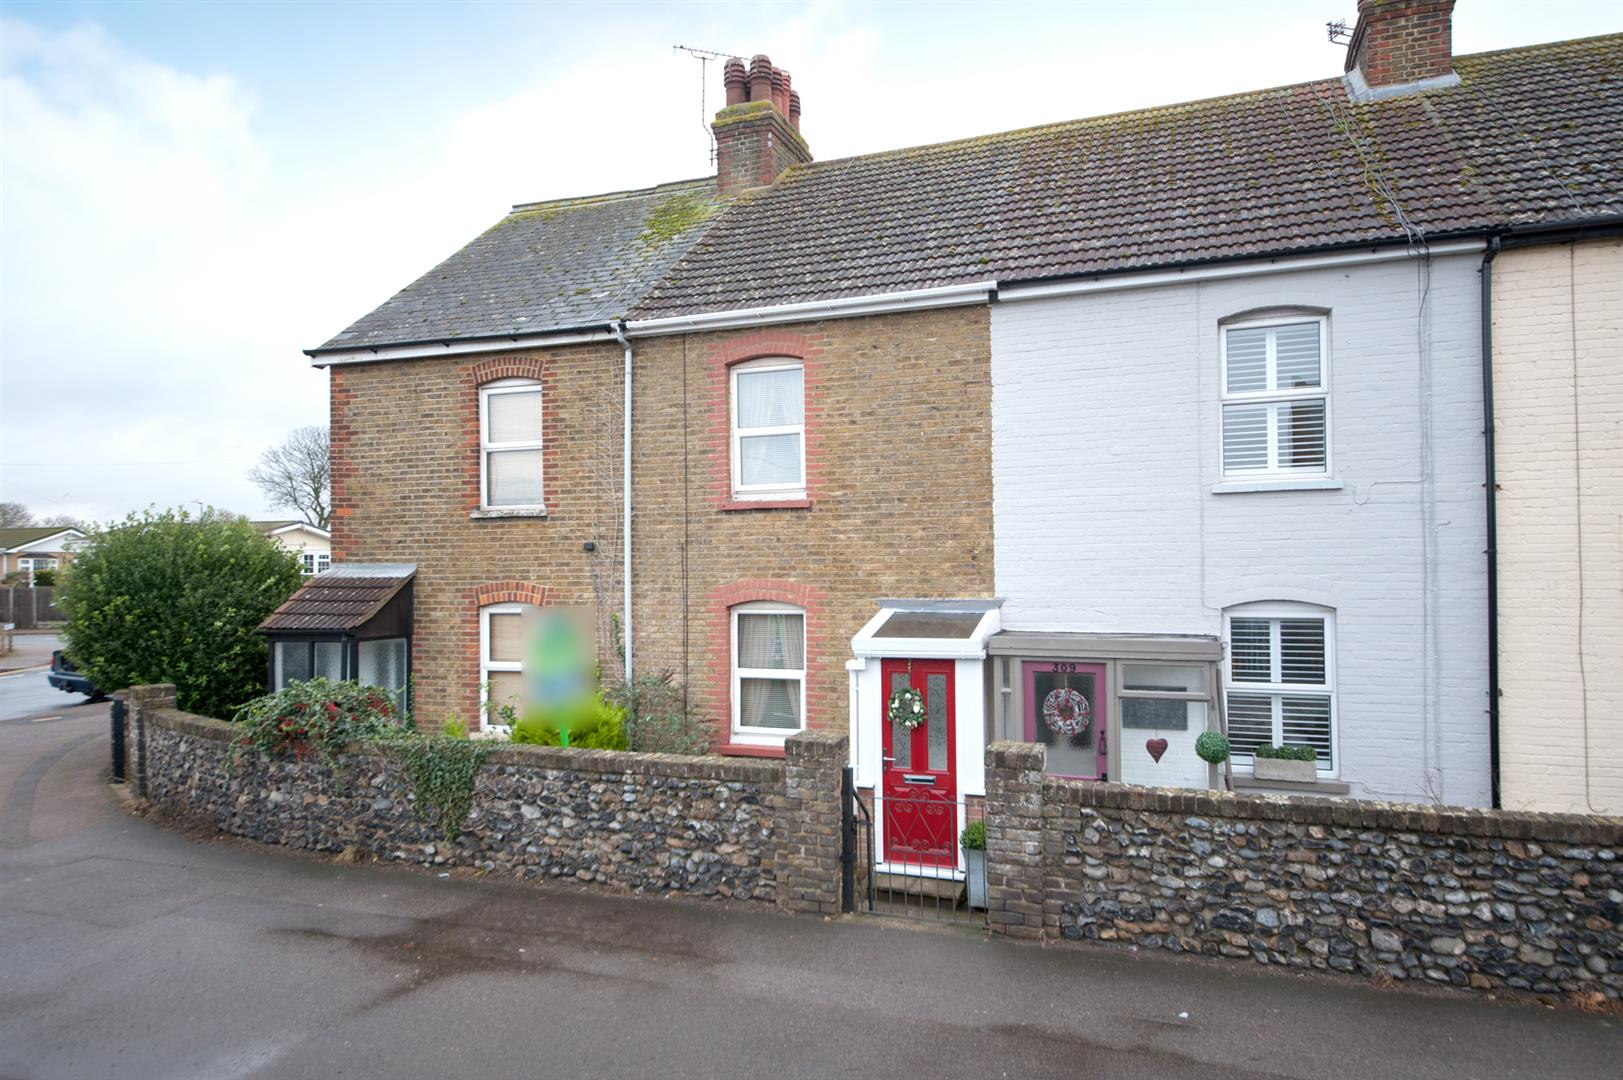 2 Bedrooms Terraced House for sale in Canterbury Road, BIRCHINGTON